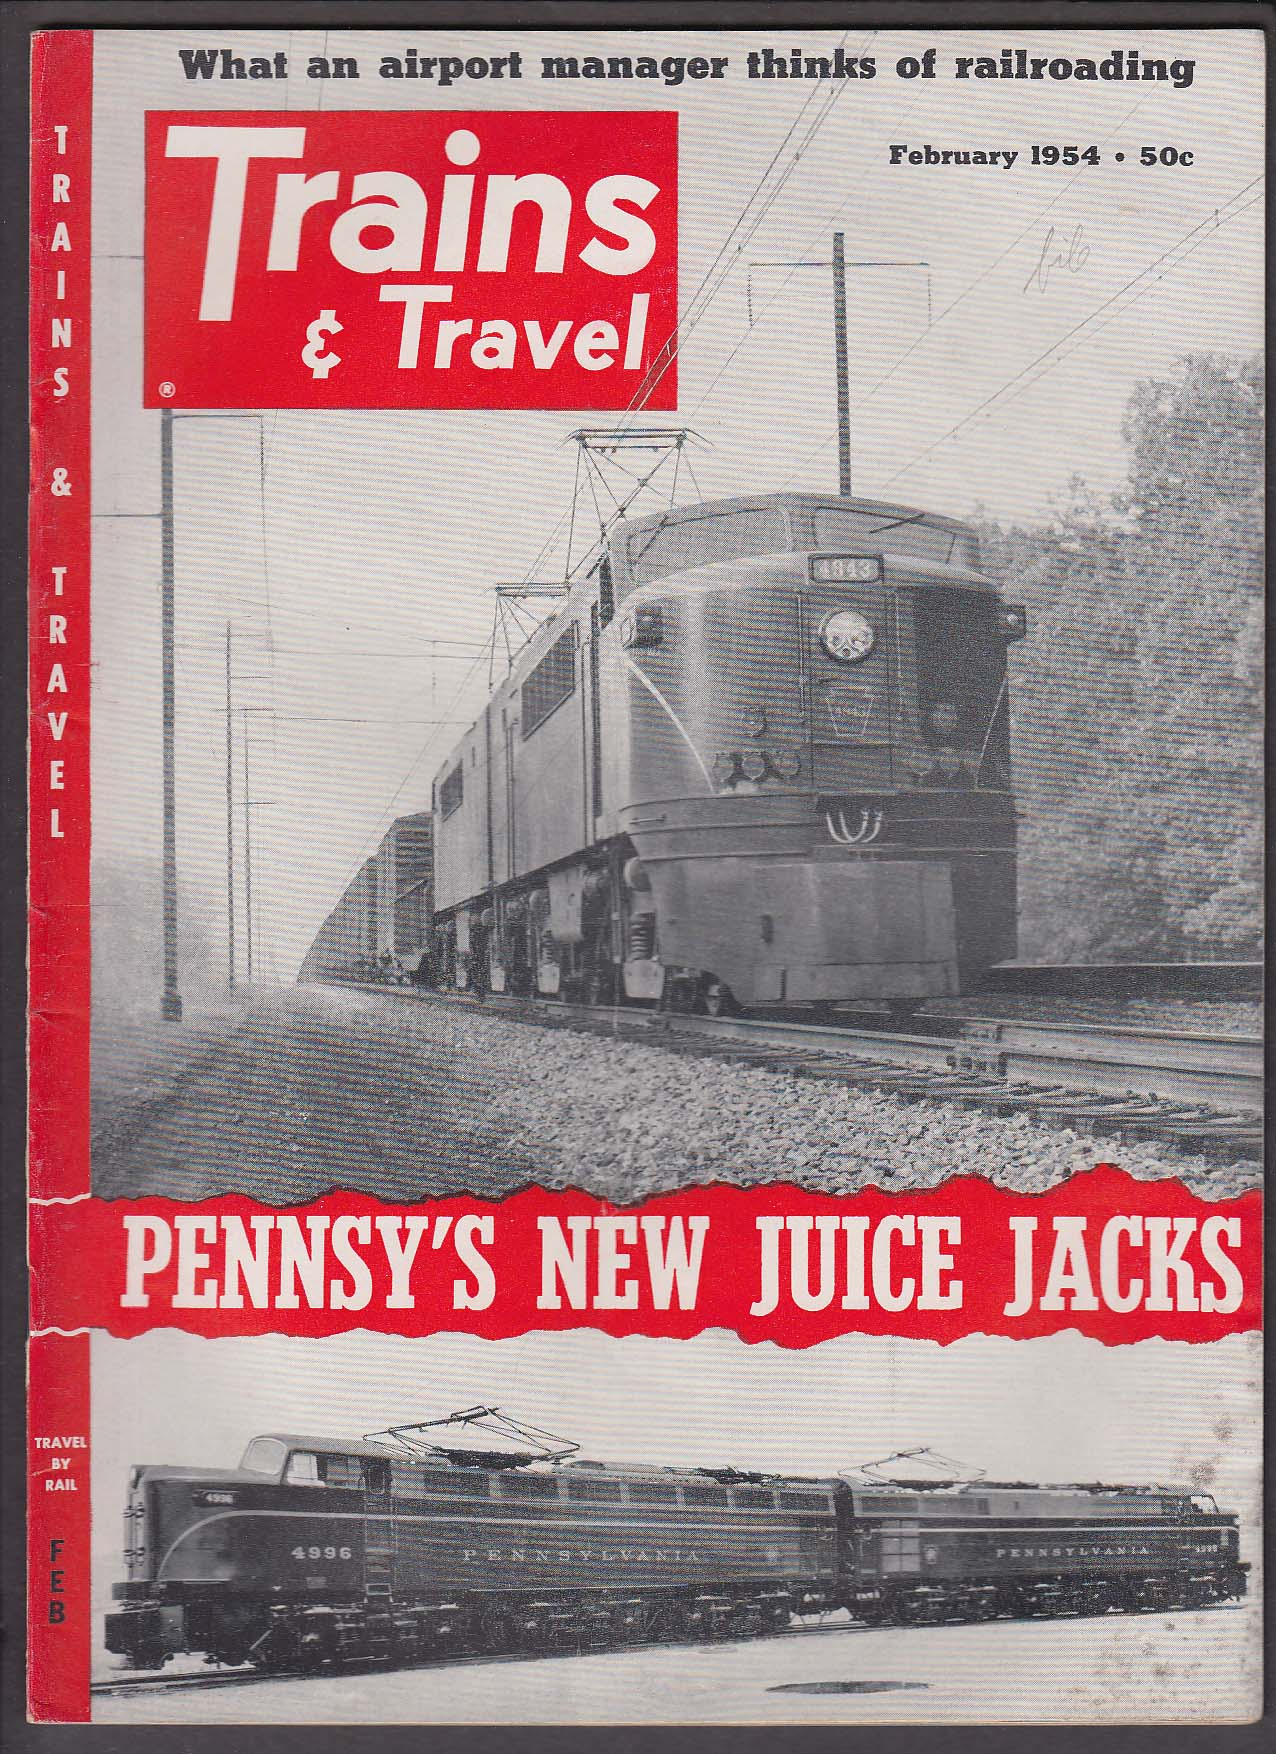 Image for TRAINS & TRAVEL Pennsy Freight Electric GG-1 P5a Bob Schmidt + 2 1954